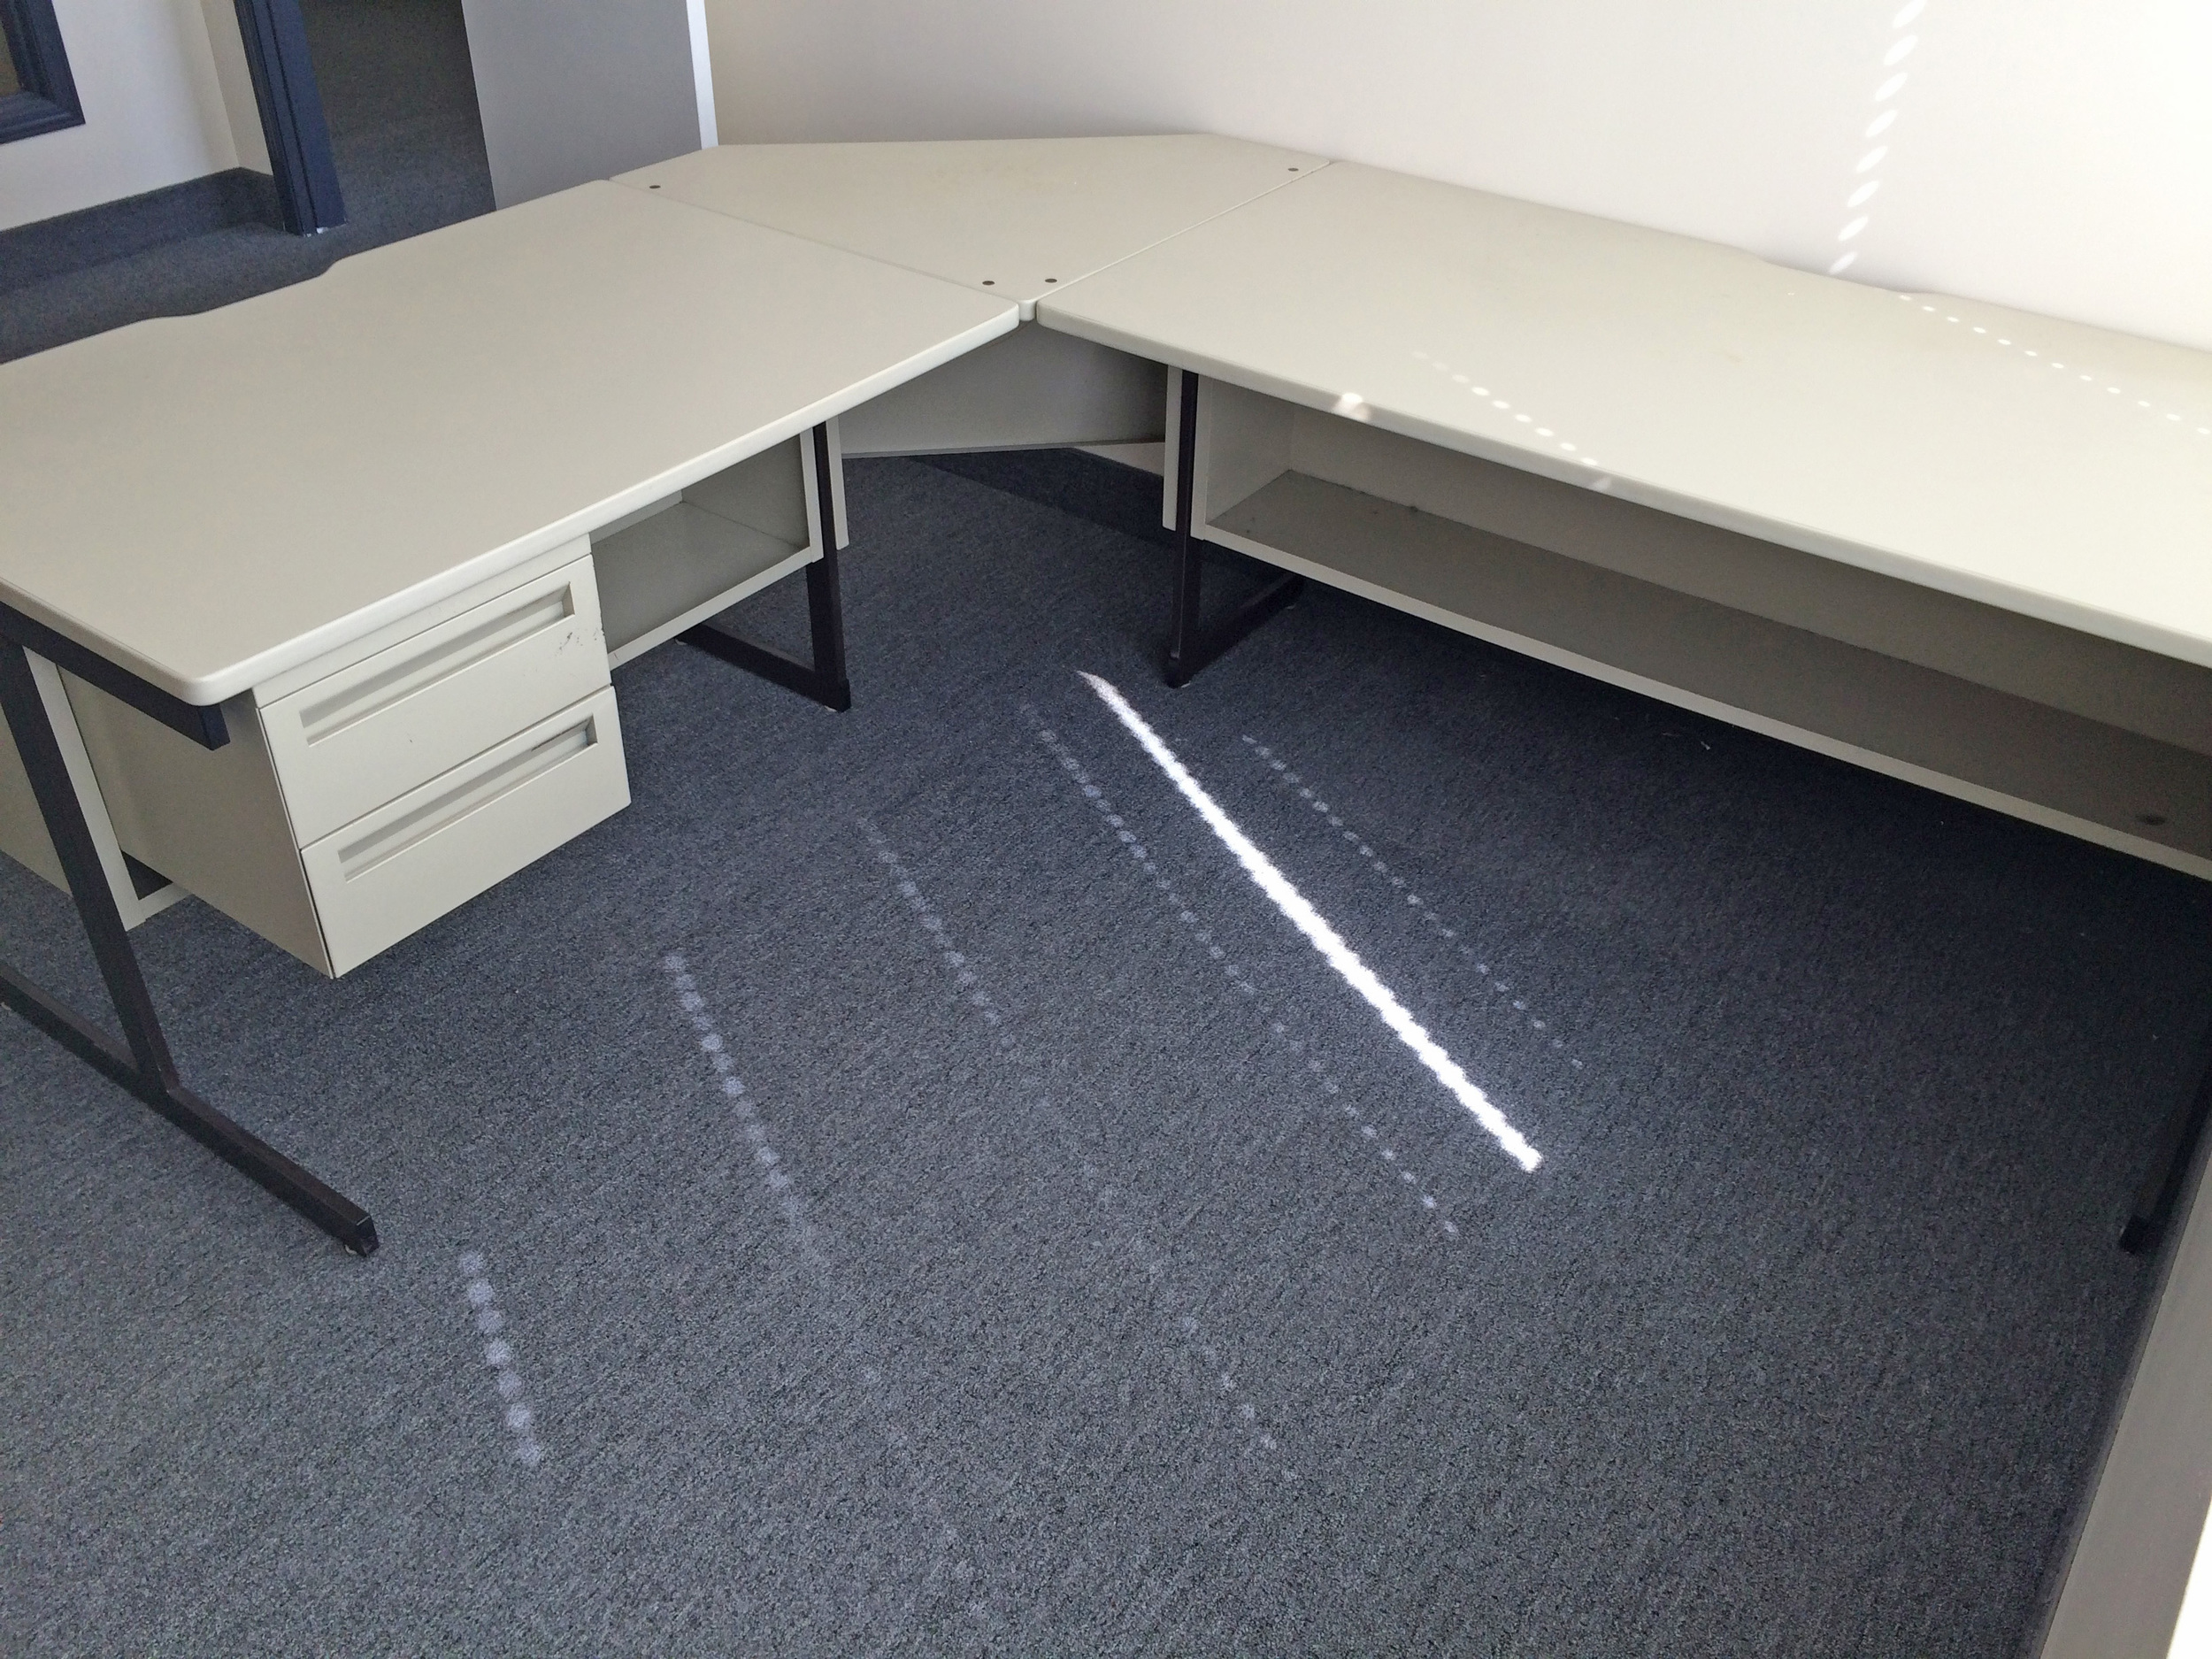 The desk of emptiness.